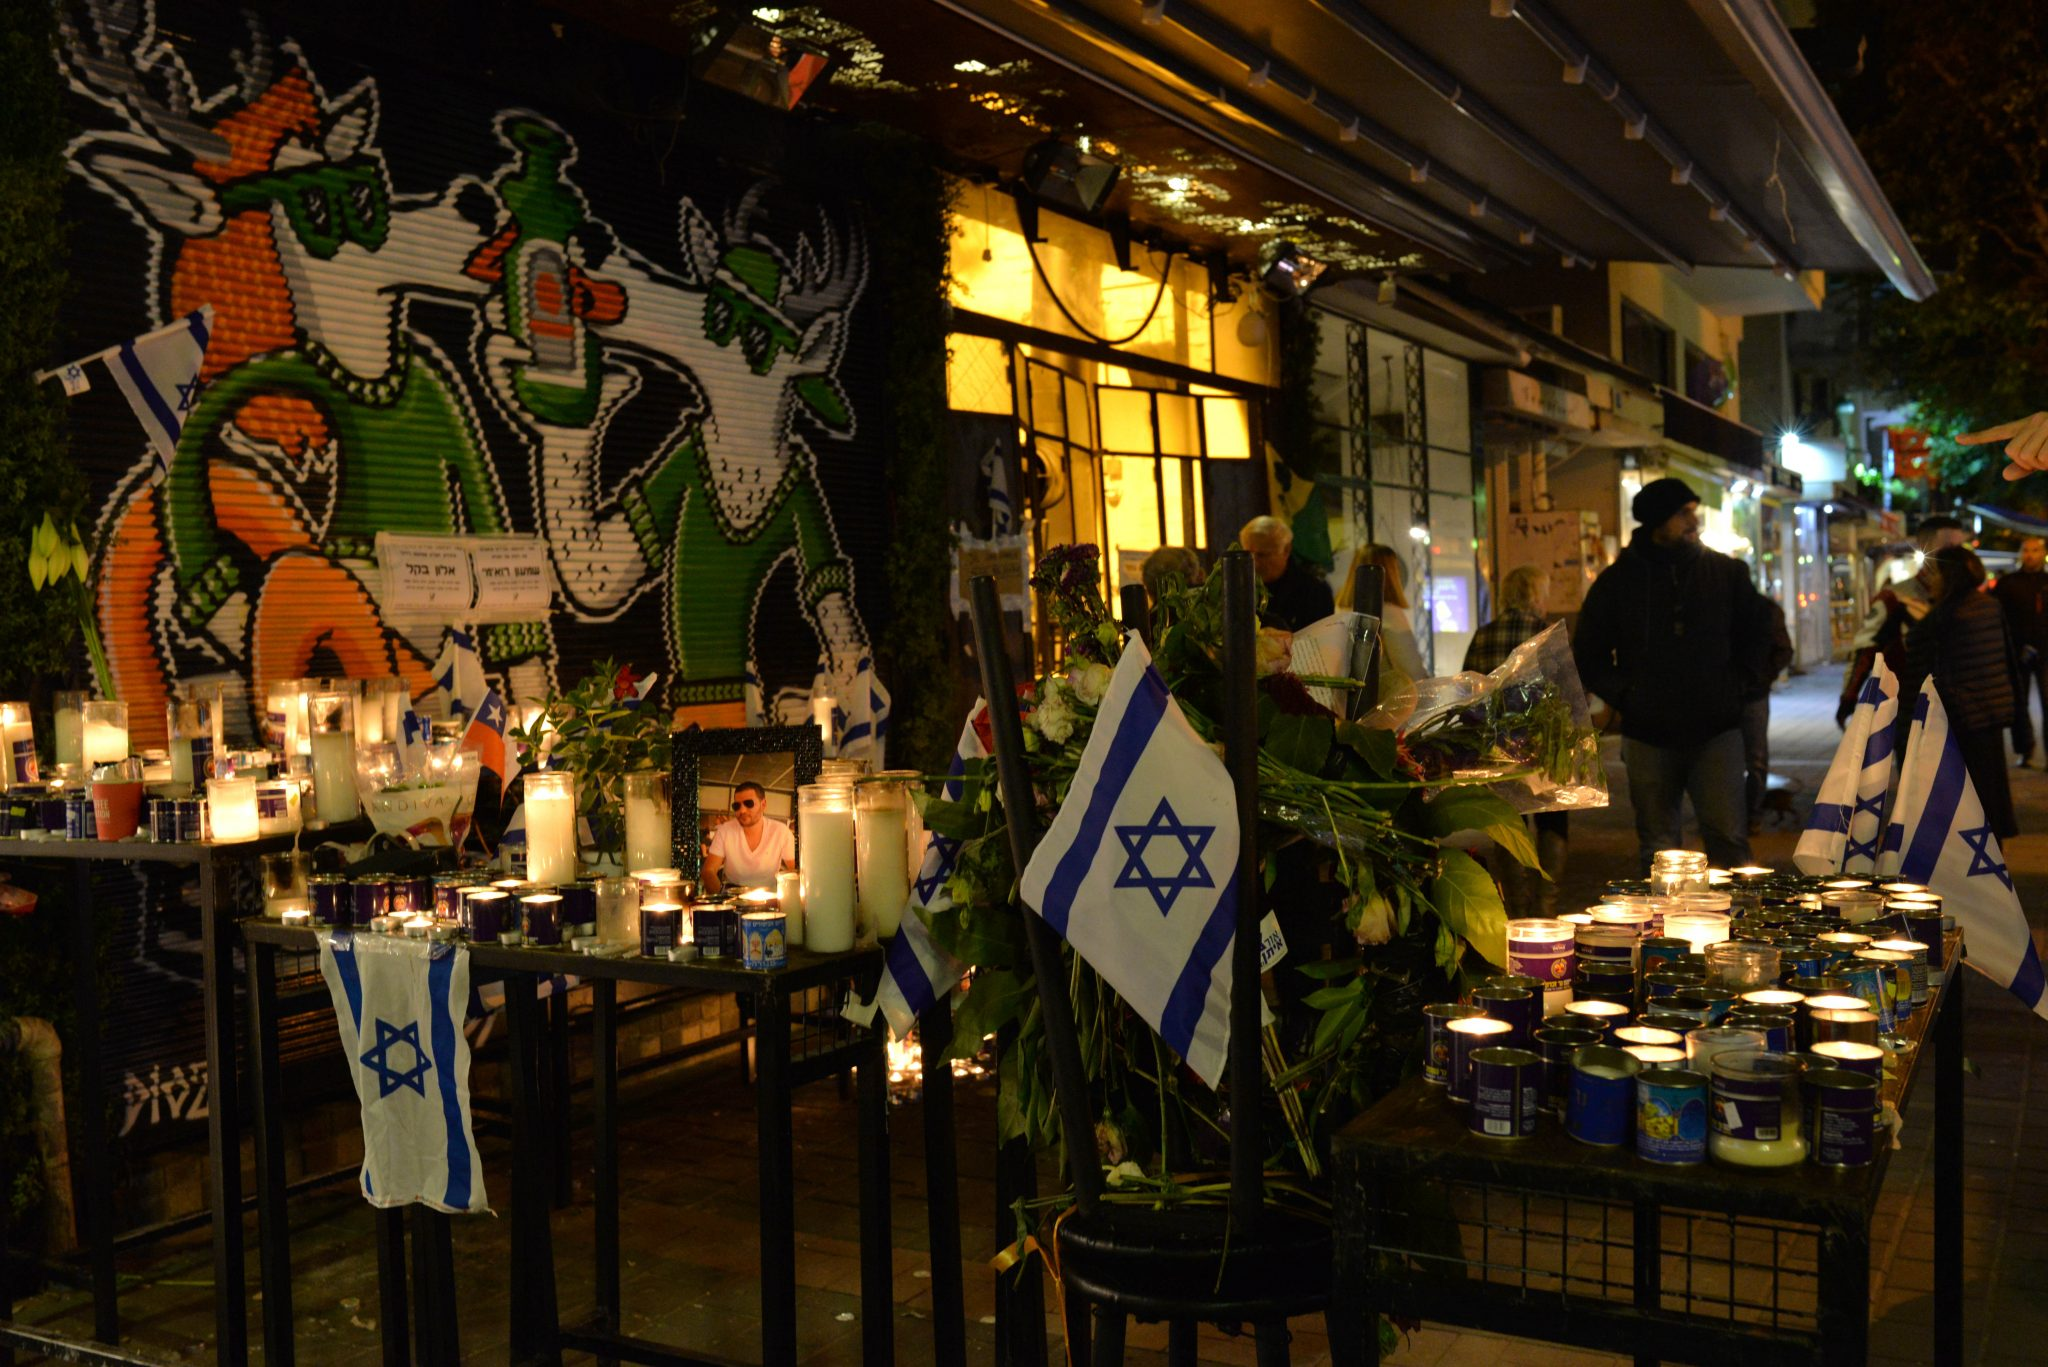 Memorial for victims of Tel Aviv shooting on New Year's Day